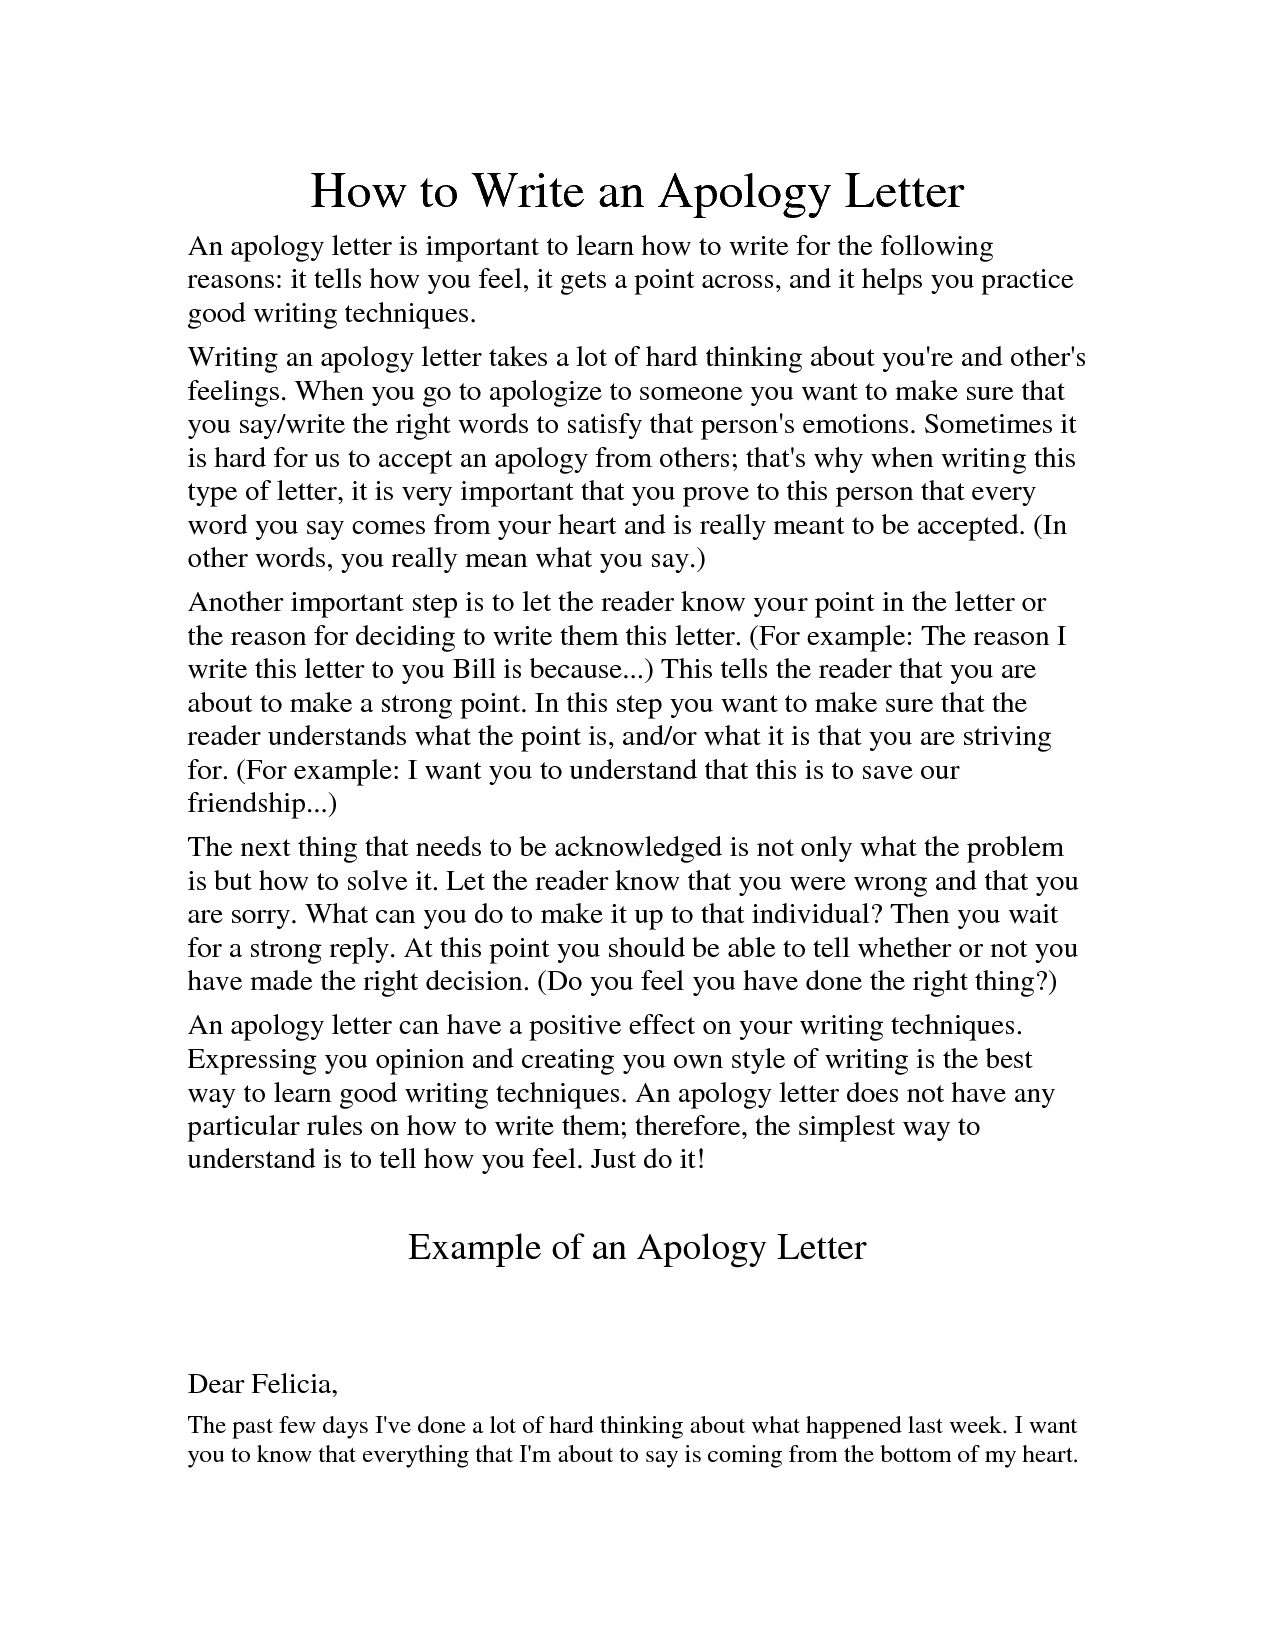 How To Write An Apology Letter To A Teacher SampleLetter Of – How to Write a Apology Letter